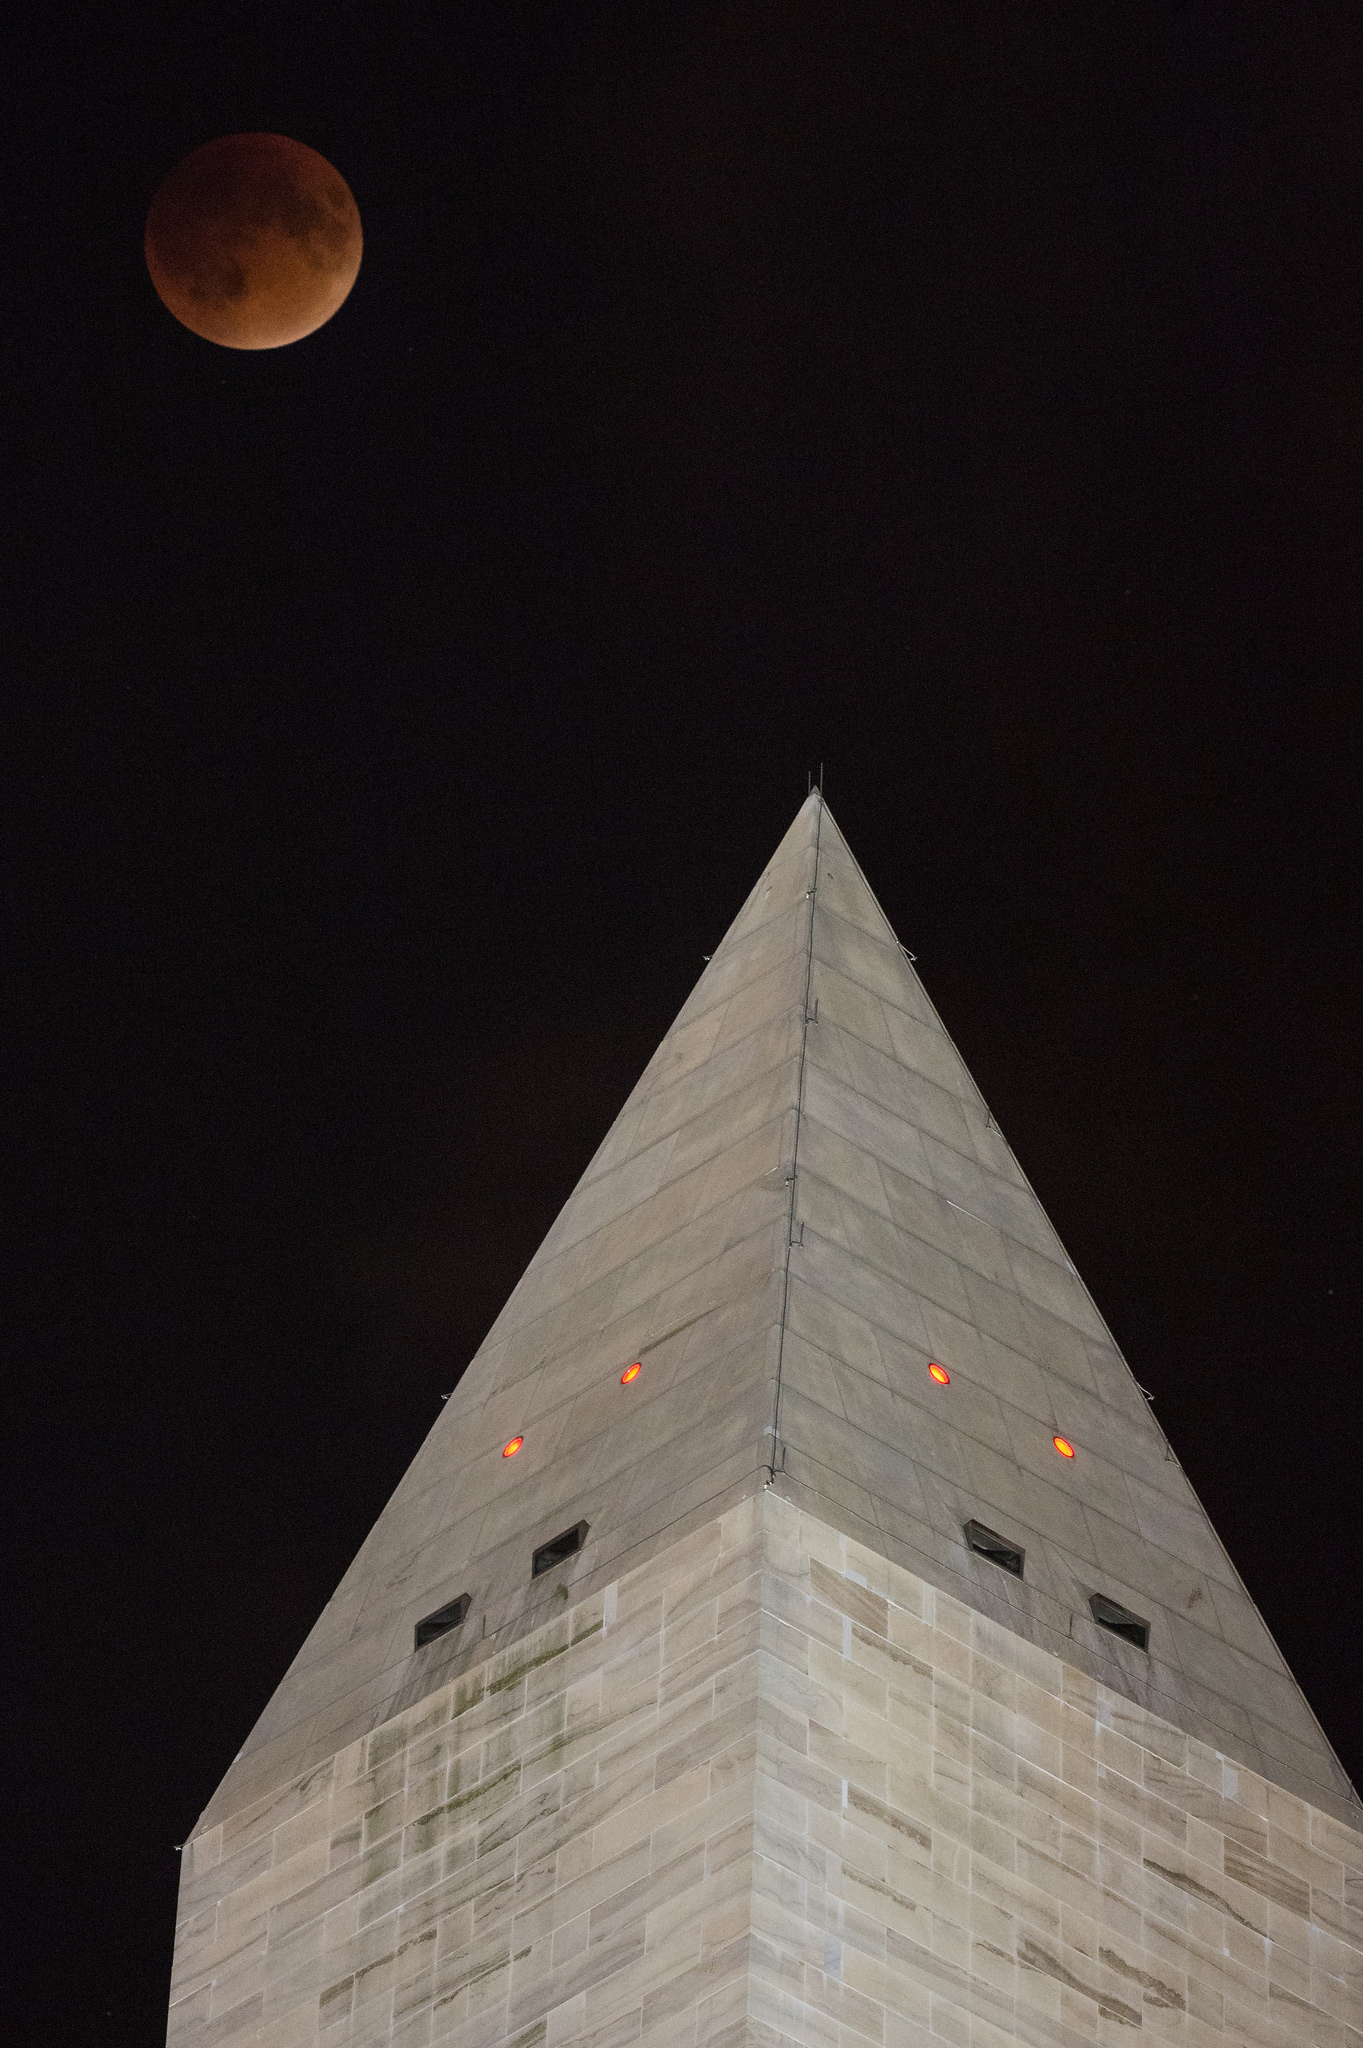 Amazing Photos of the Rare Supermoon Total Lunar Eclipse ...